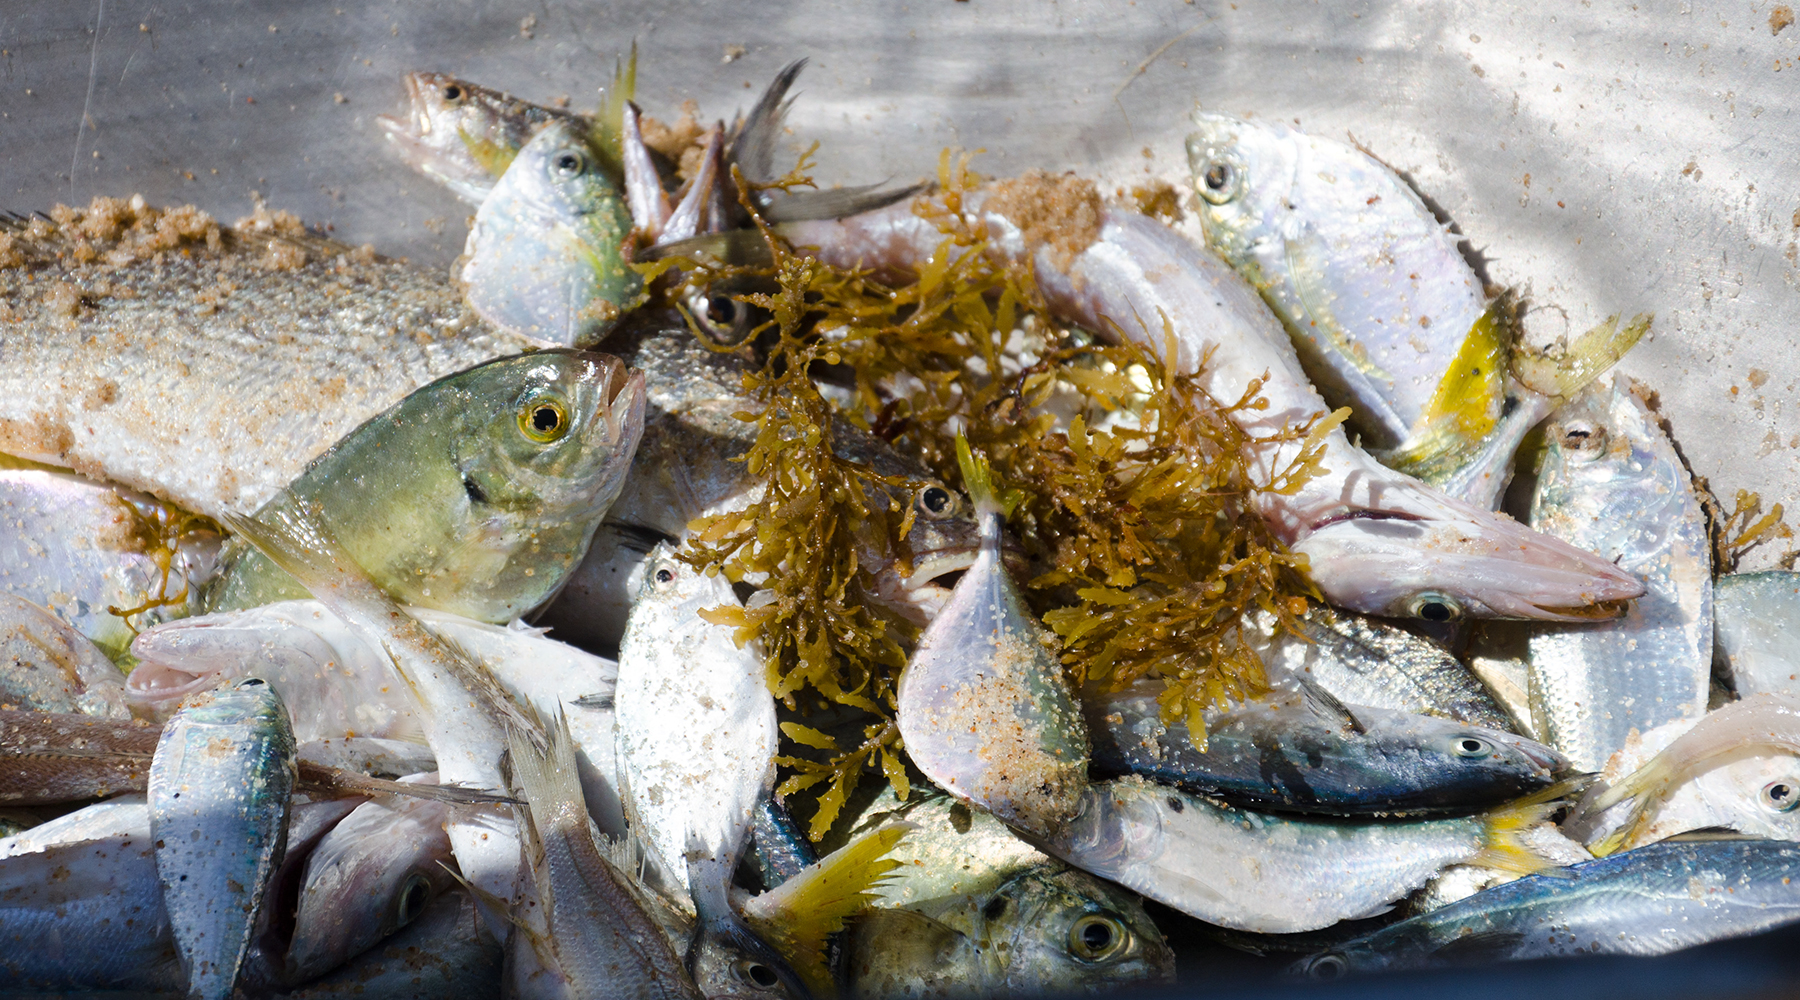 Subsidising industrial fishing needs to stop - now